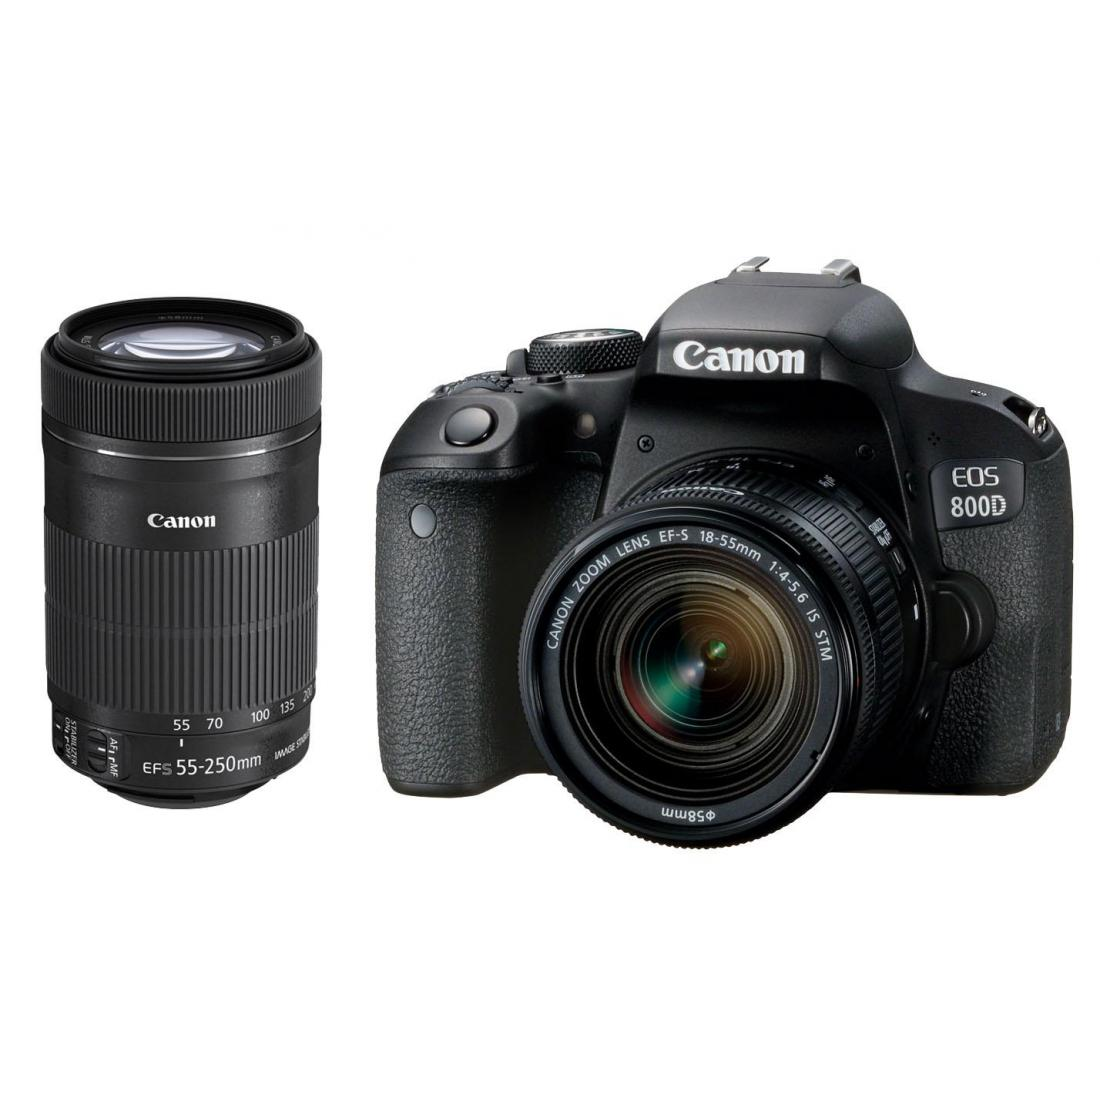 Image Result For Canon Eos 800D + 55-250 Canon Official